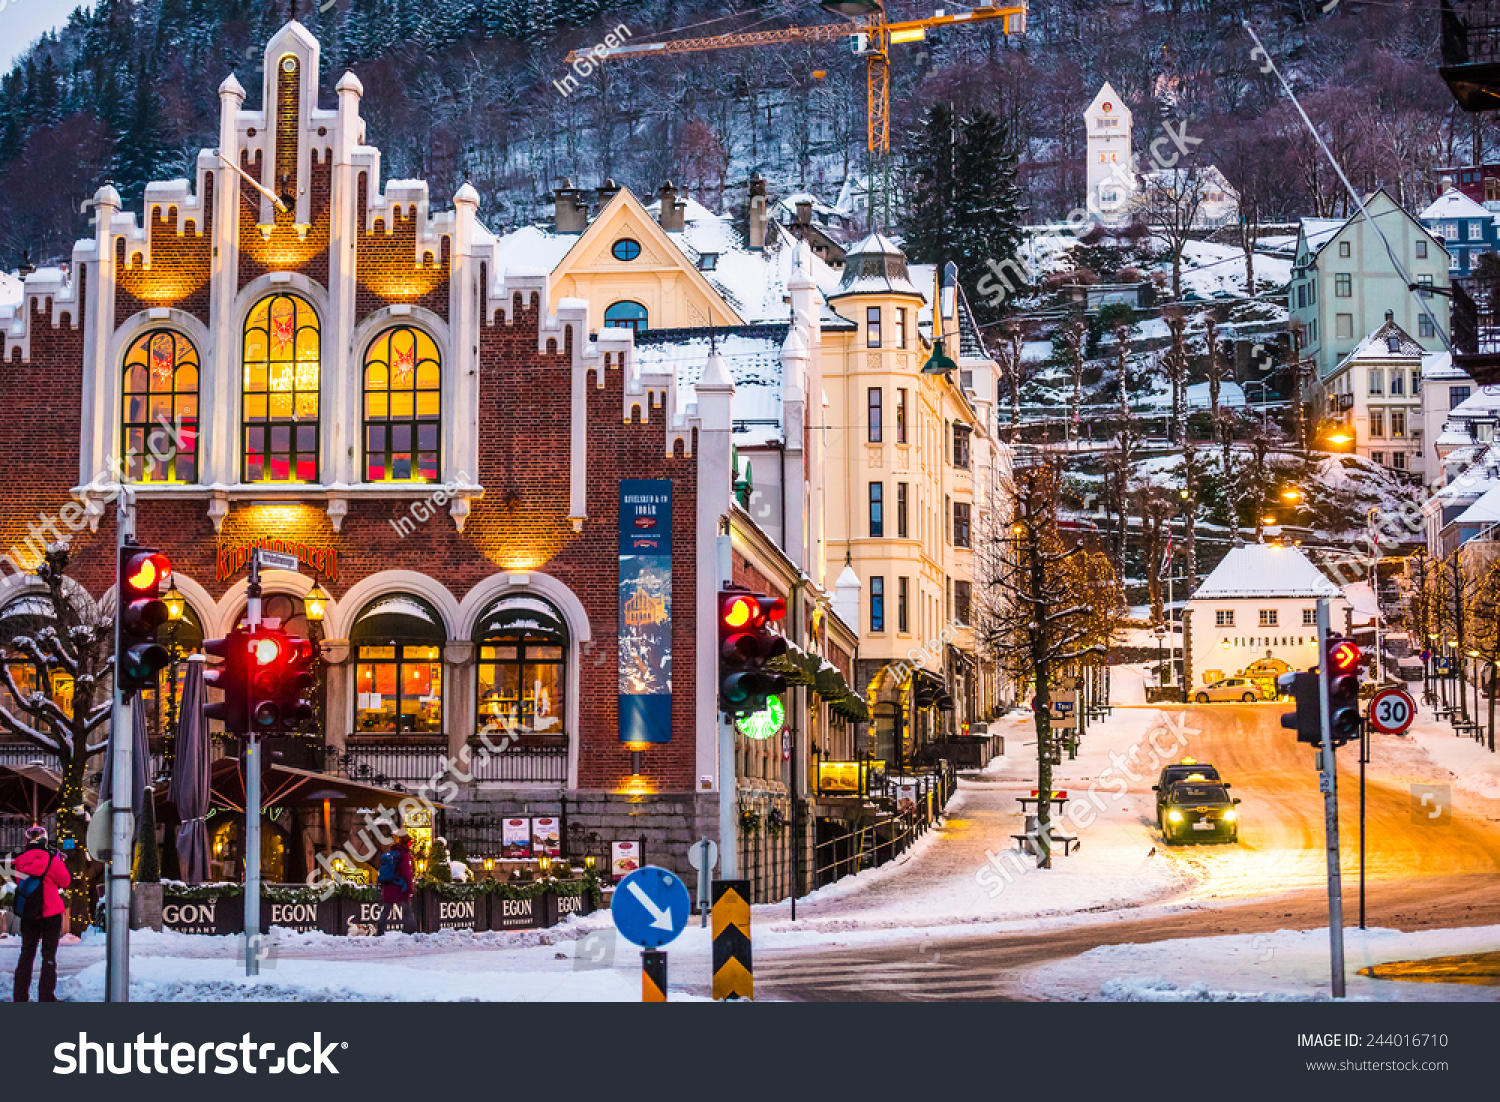 Homes With Christmas Decorations Bergen Norway December 27 2014 Evening The Streets Of